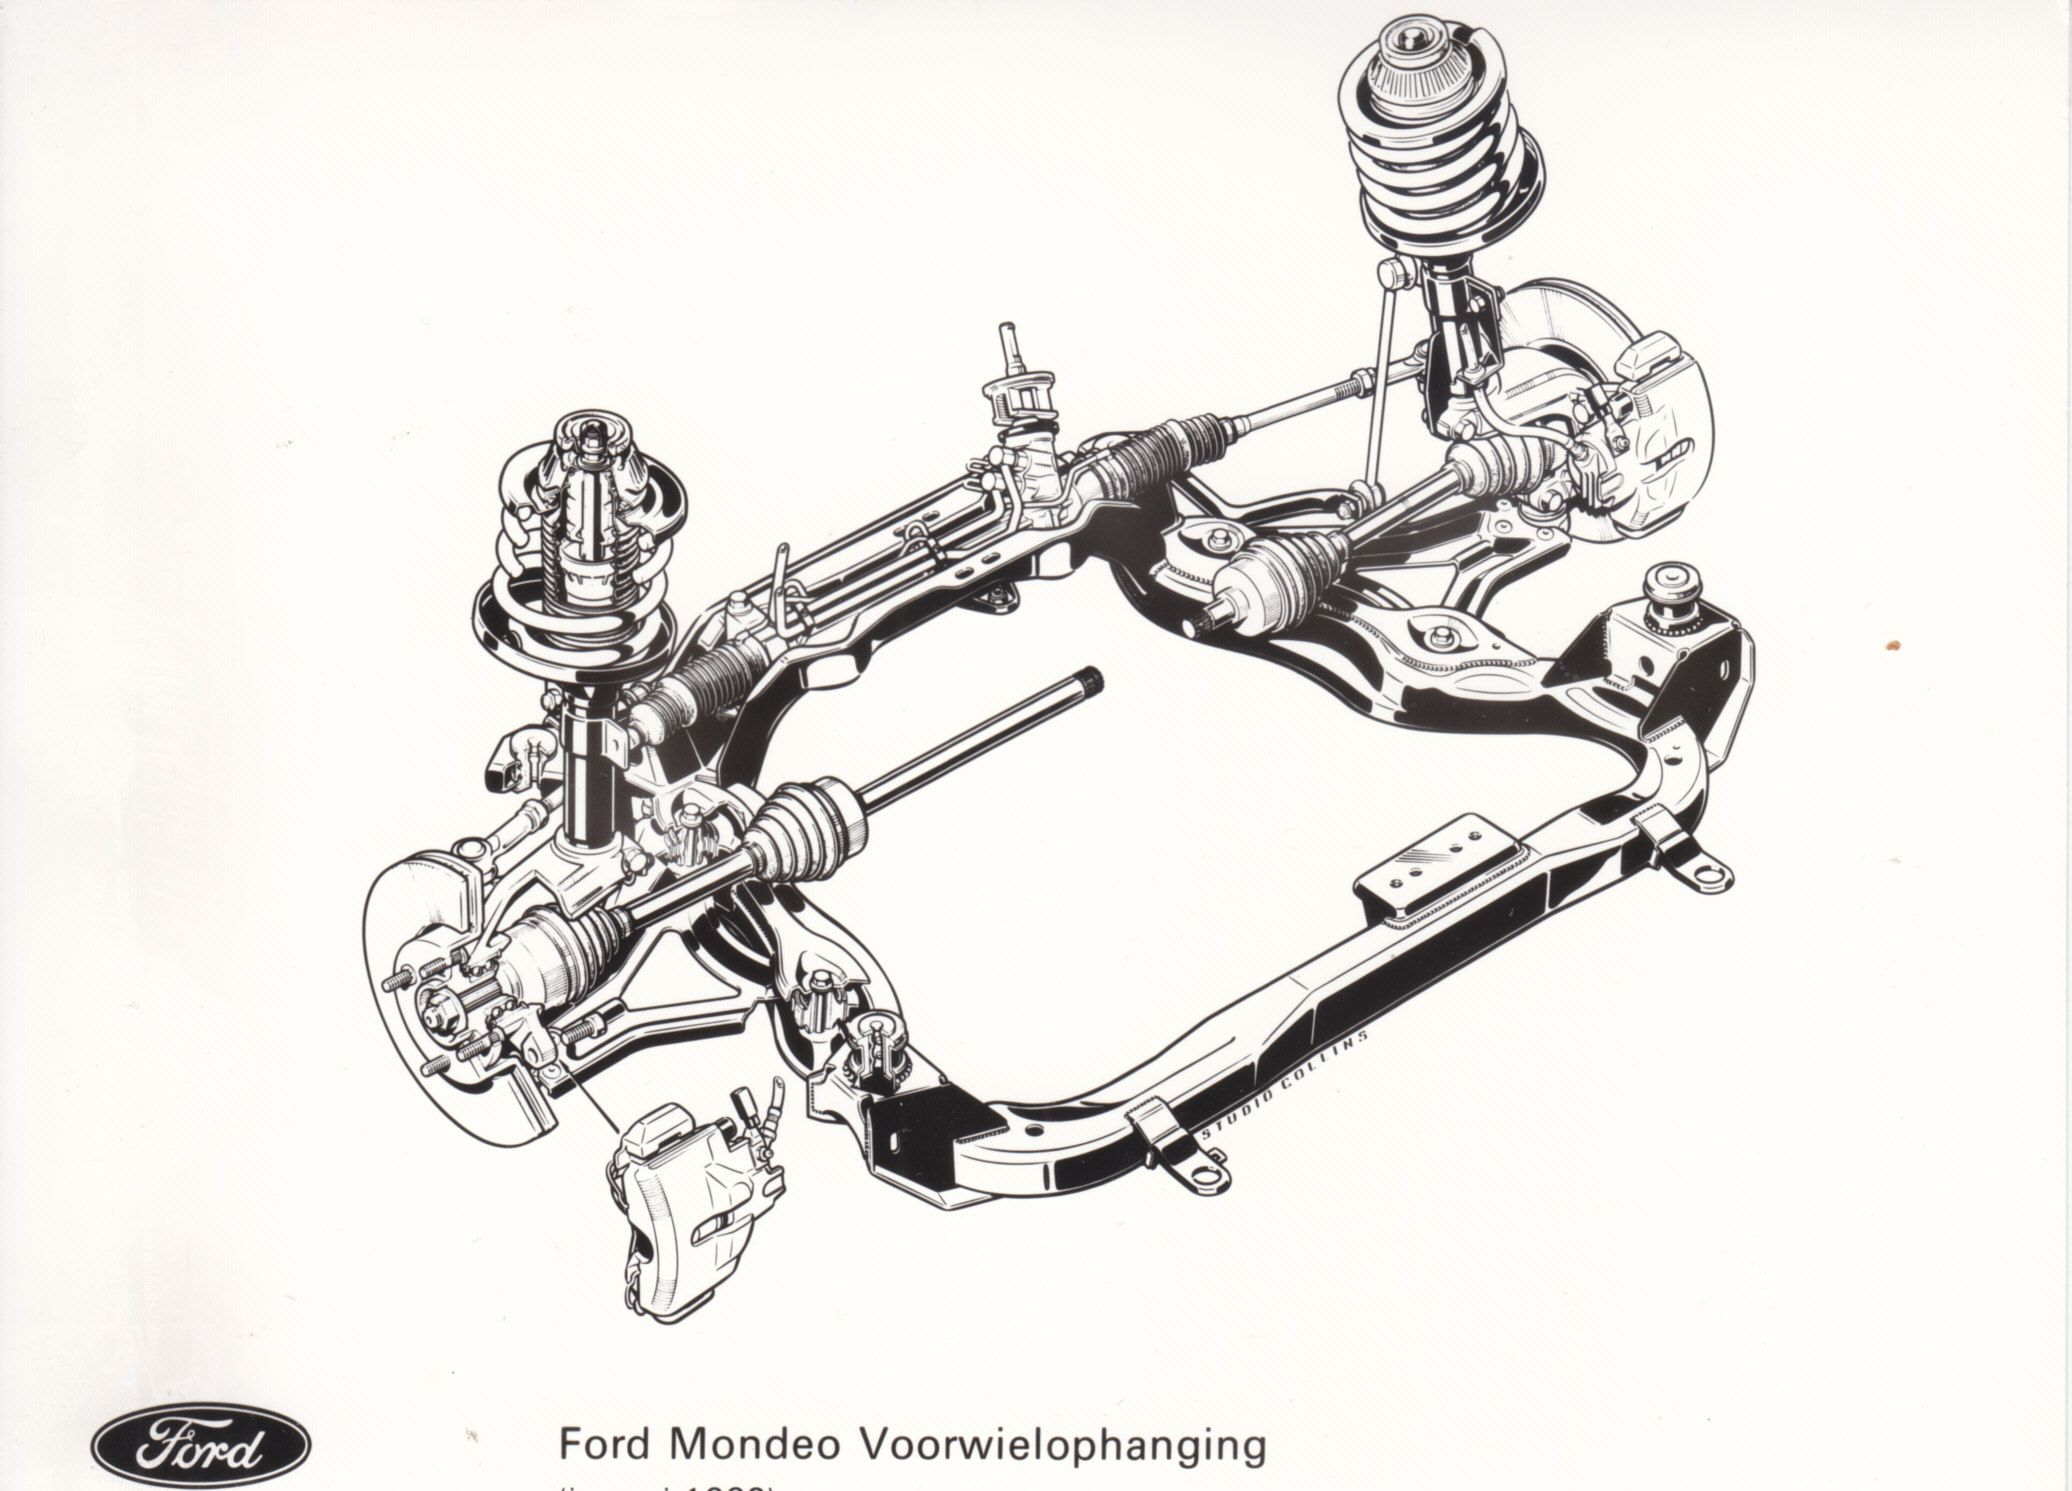 Ford Mondeo Front Wheel Suspension Nl 01